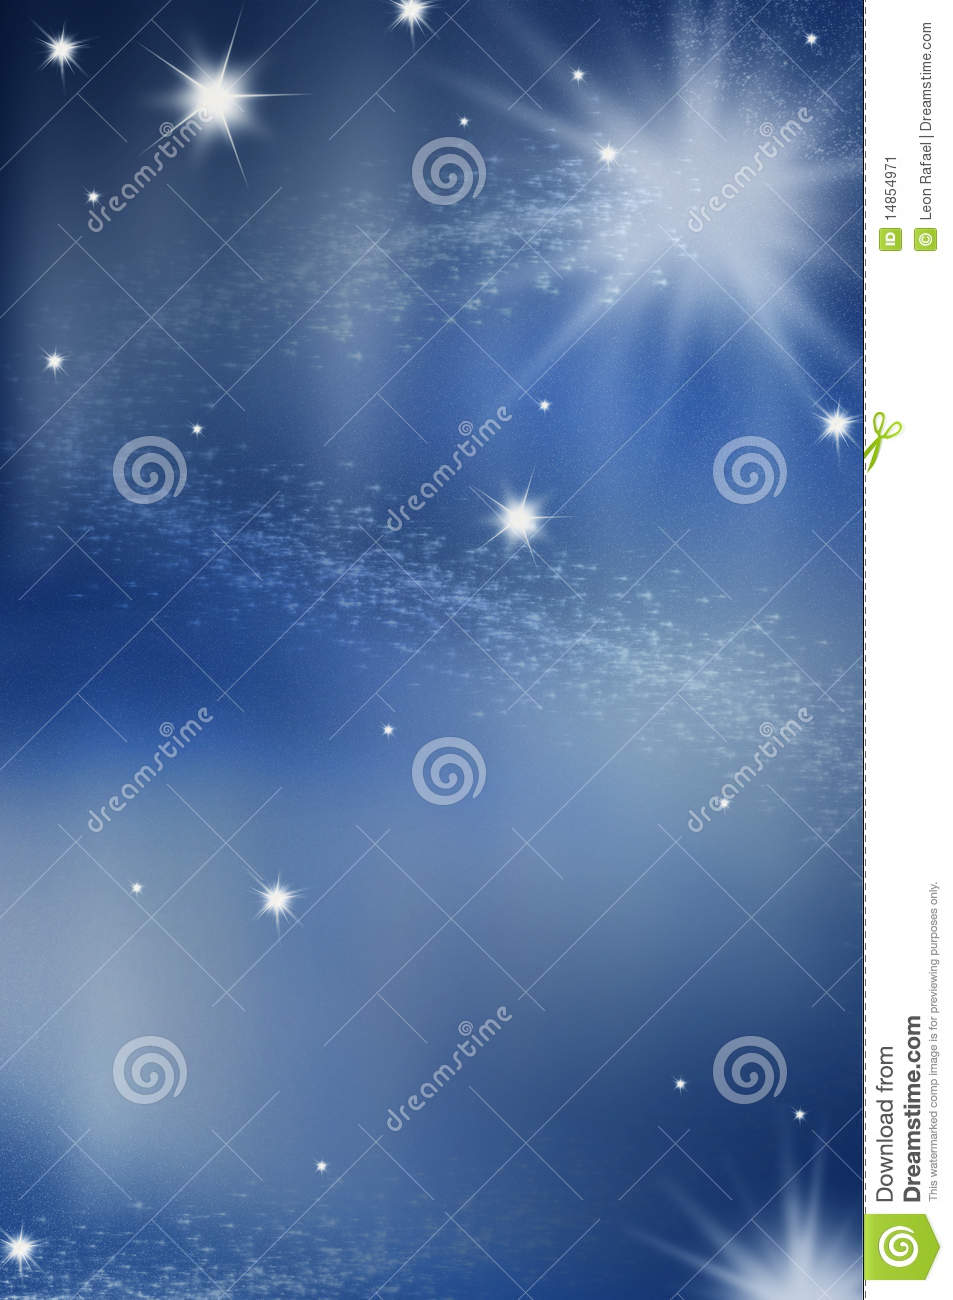 Christmas Sky With North Star Stock Image - Image of stars, xmas ...